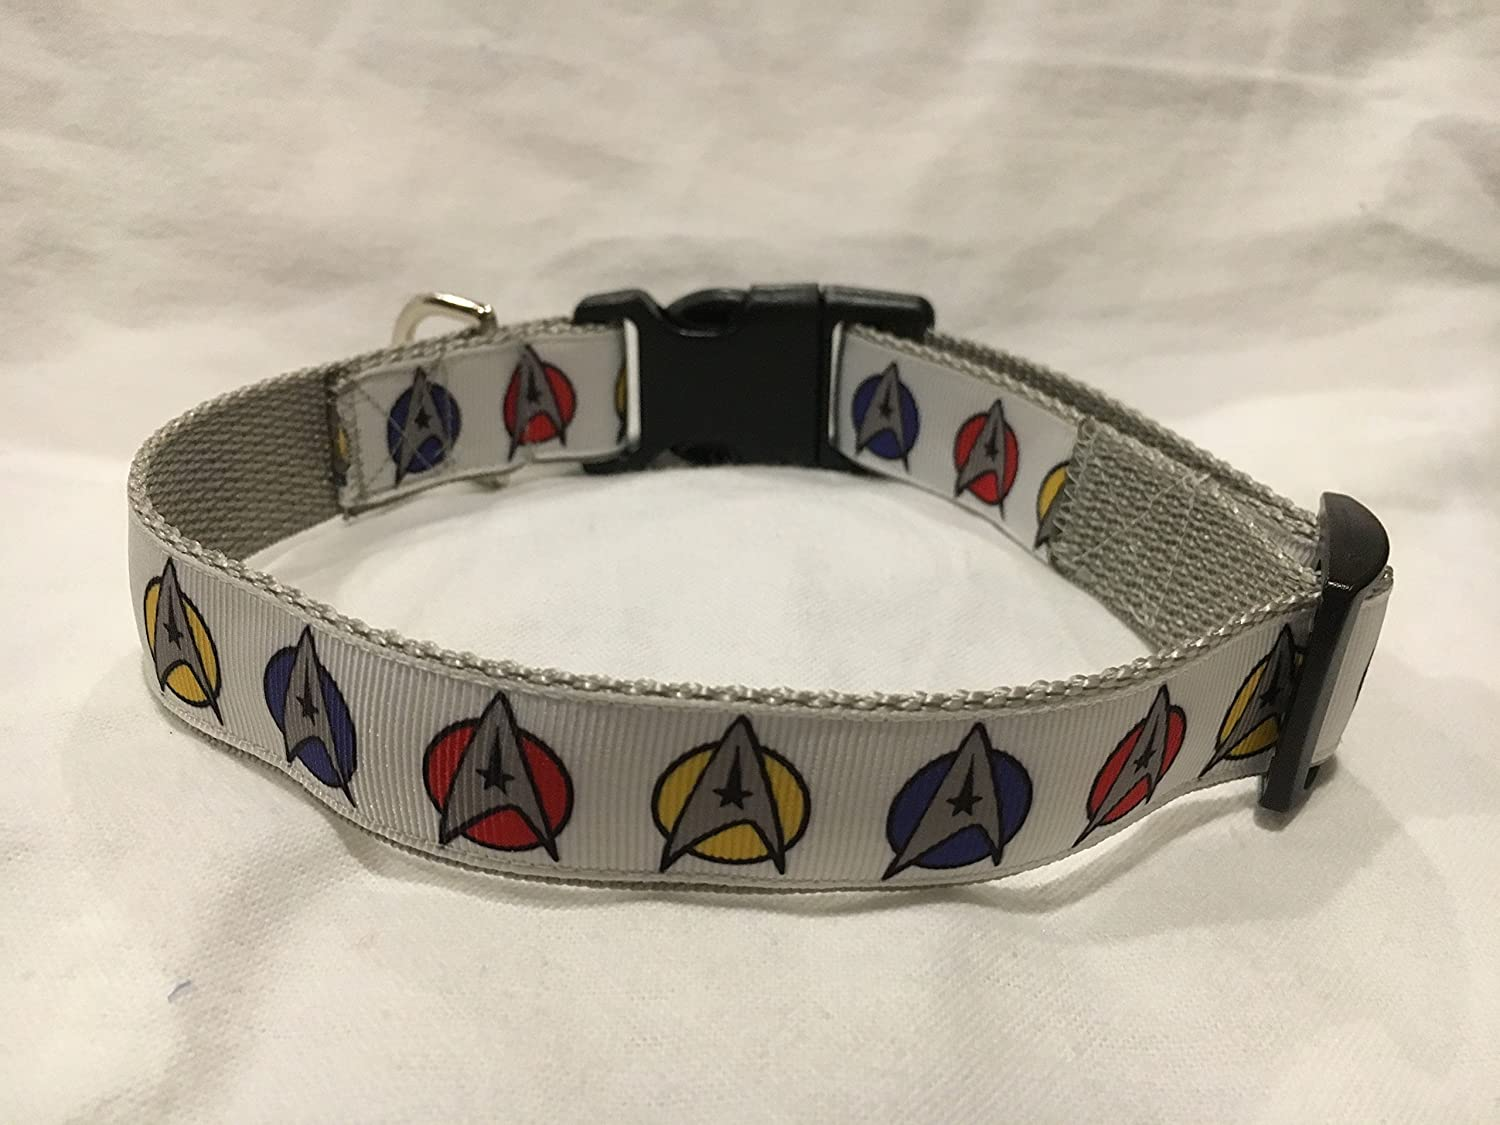 Star Trek Dog Collar, Puppy Collar, Custom Dog Collar, Personalized Dog Collar, Star Trek Gifts